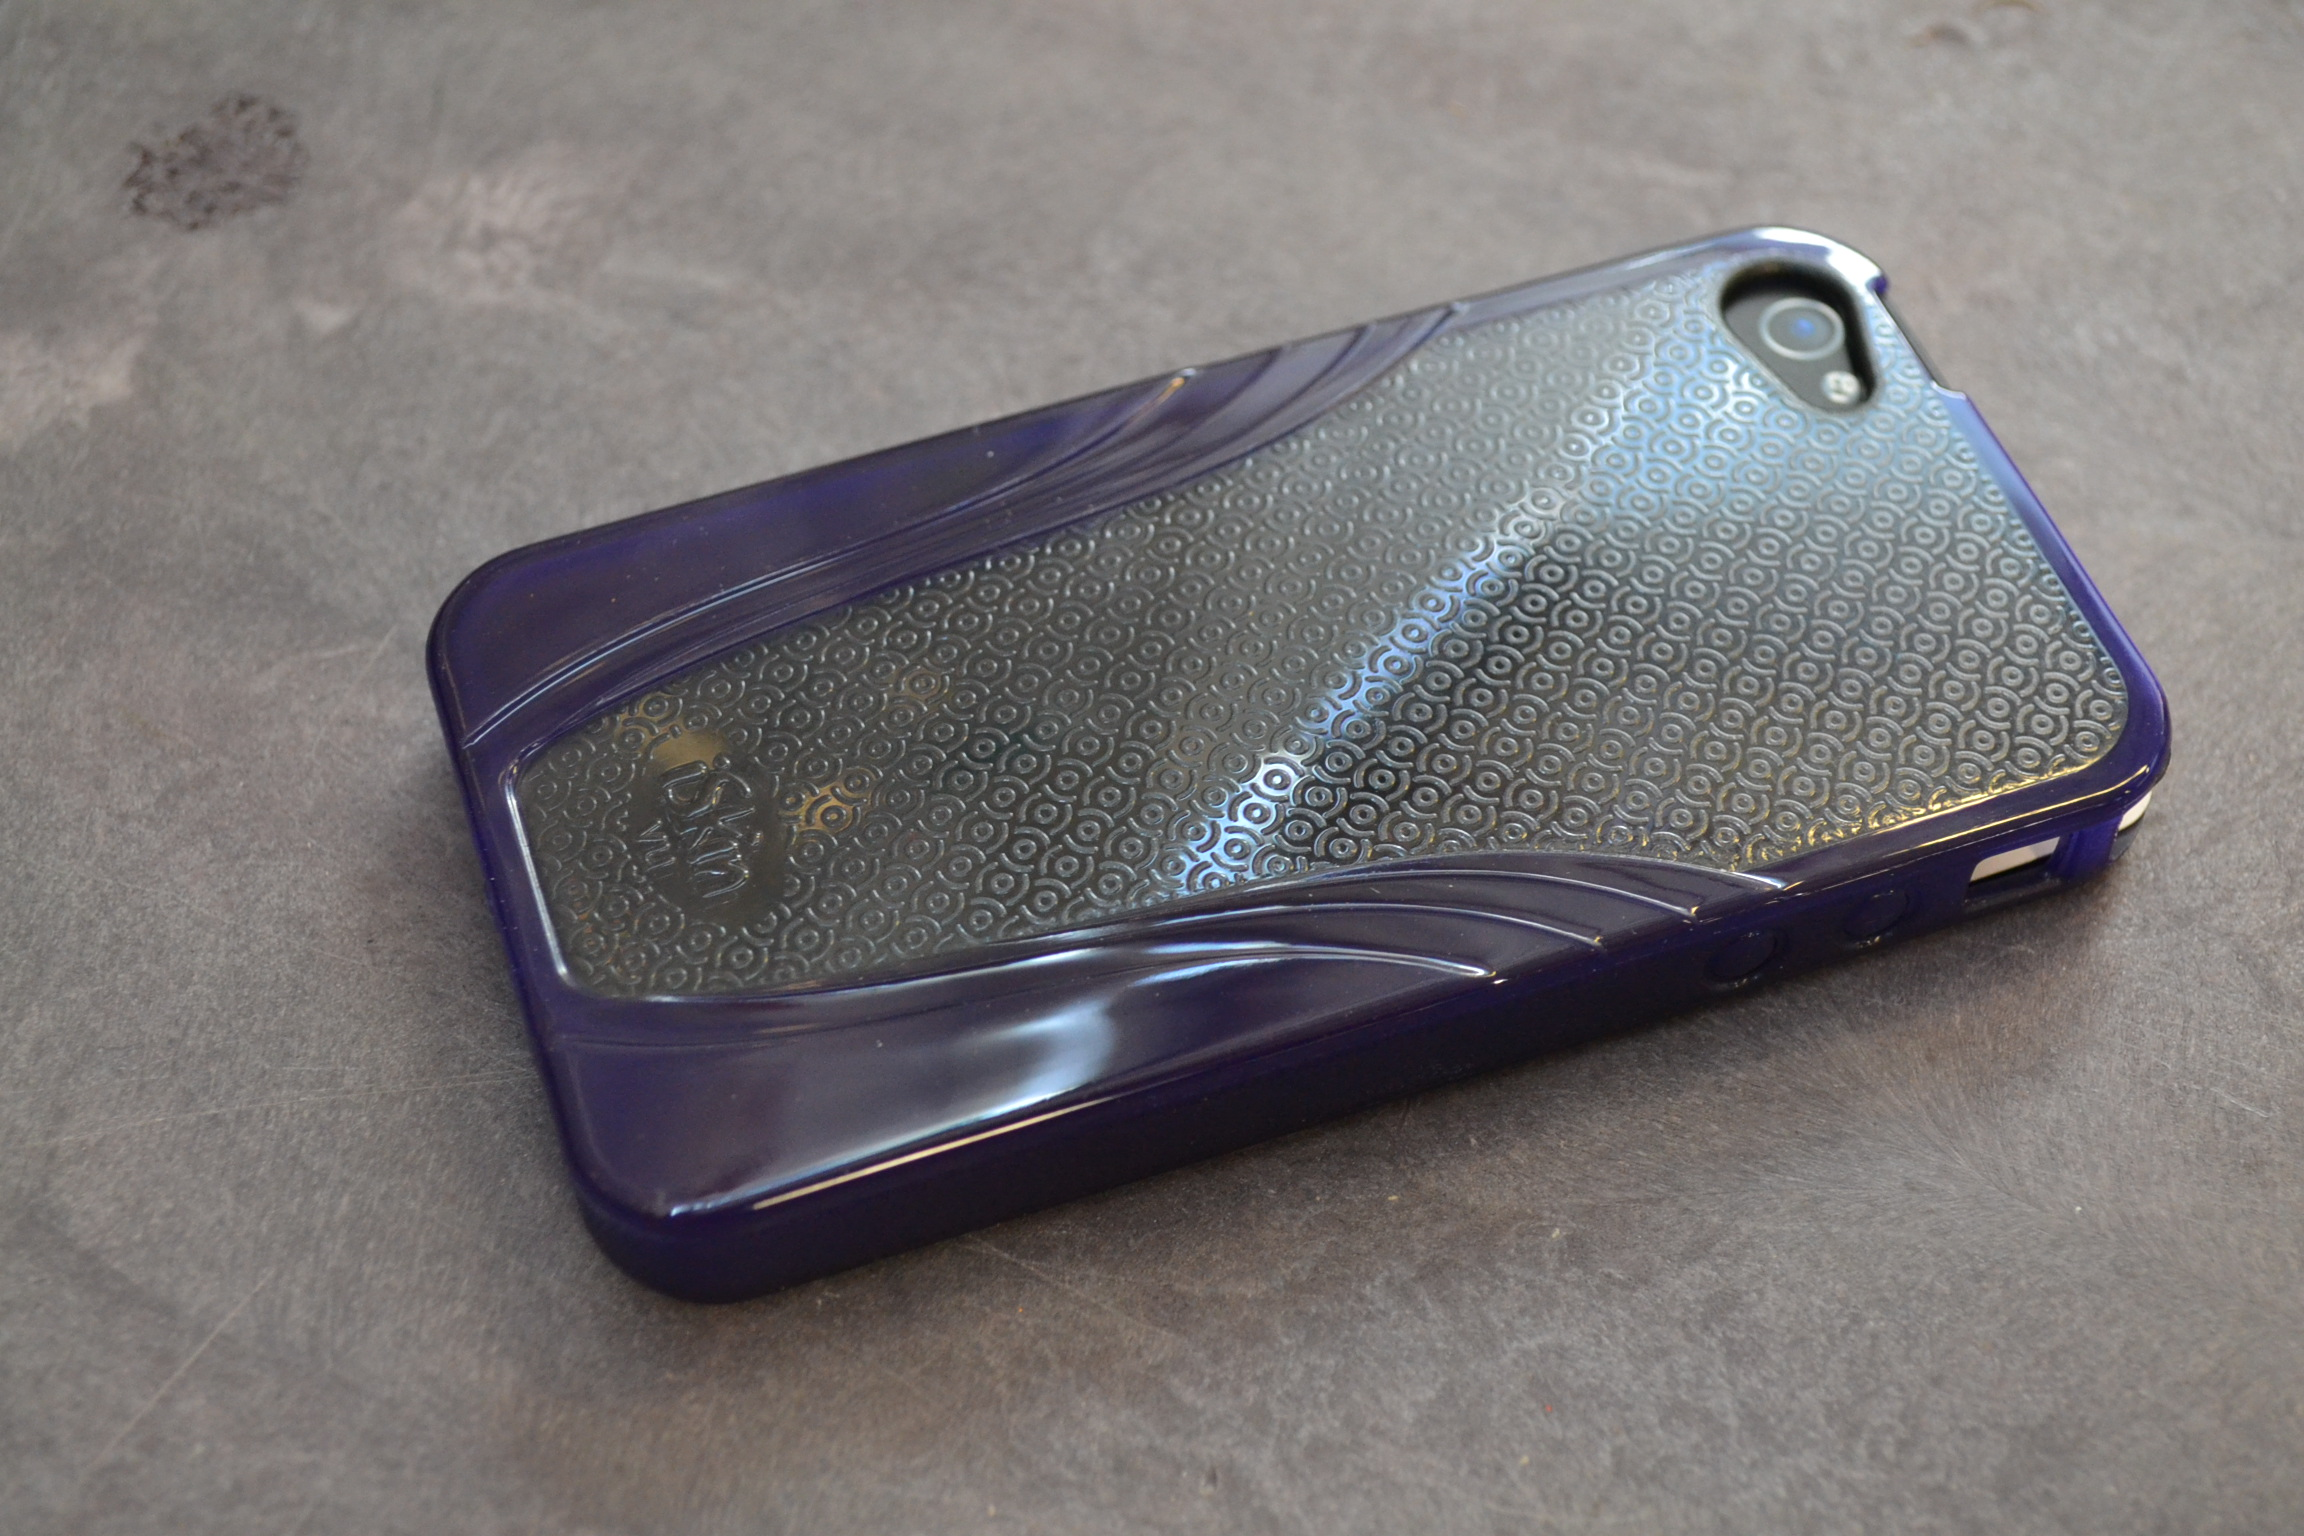 Image 0 of iSkin Solo Vu Purple Case For iPhone 4G